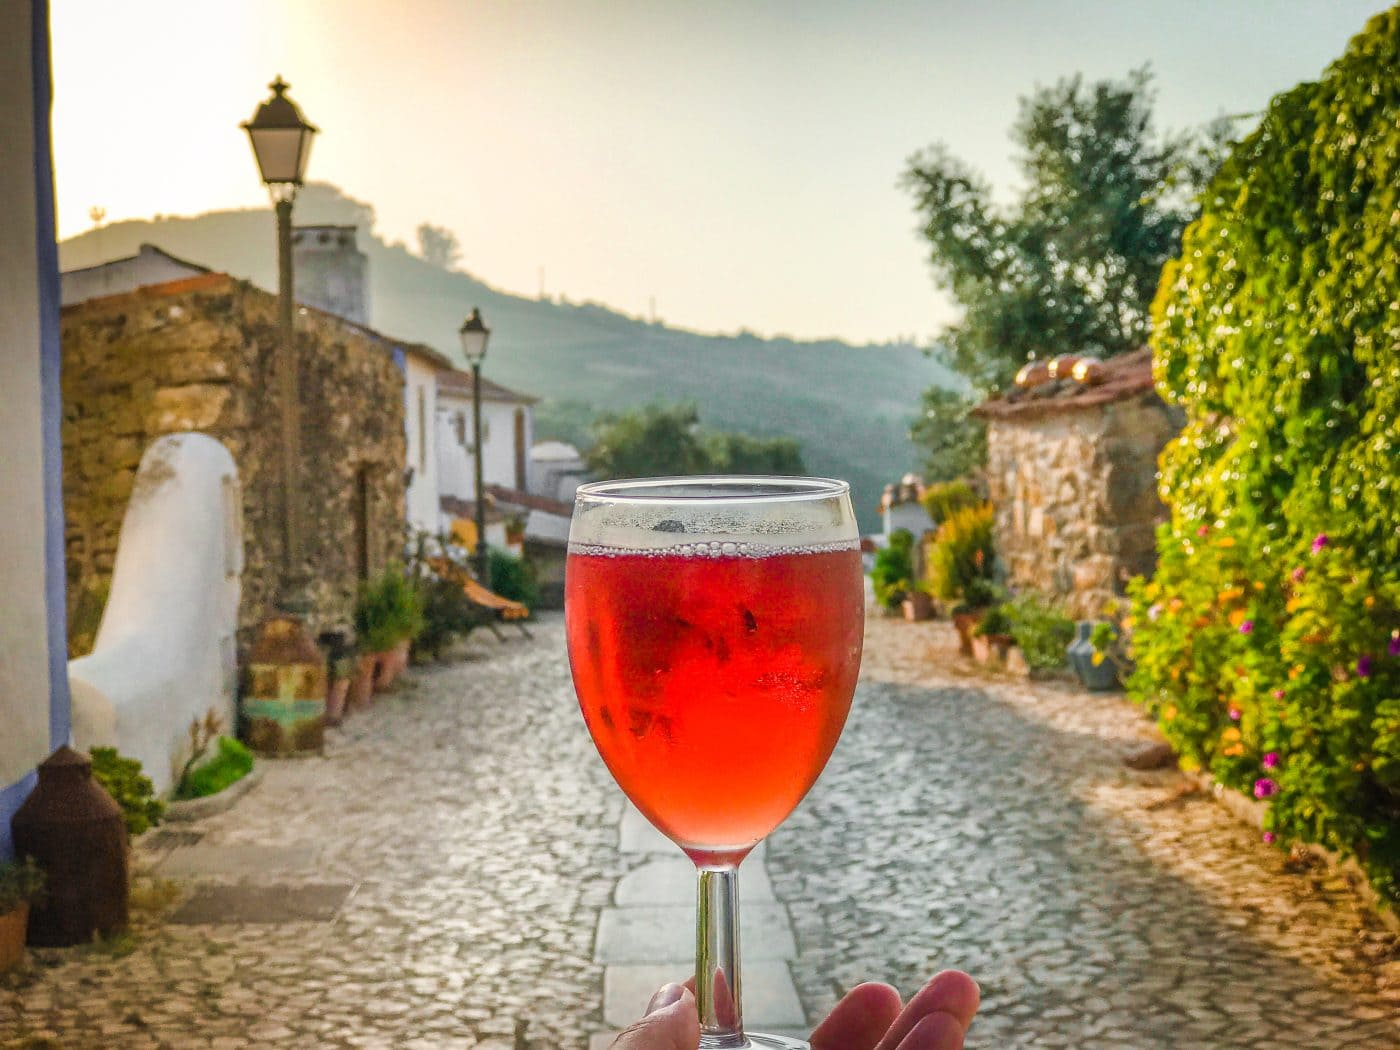 In Portugal: Tchin Tchin from your 'own' village